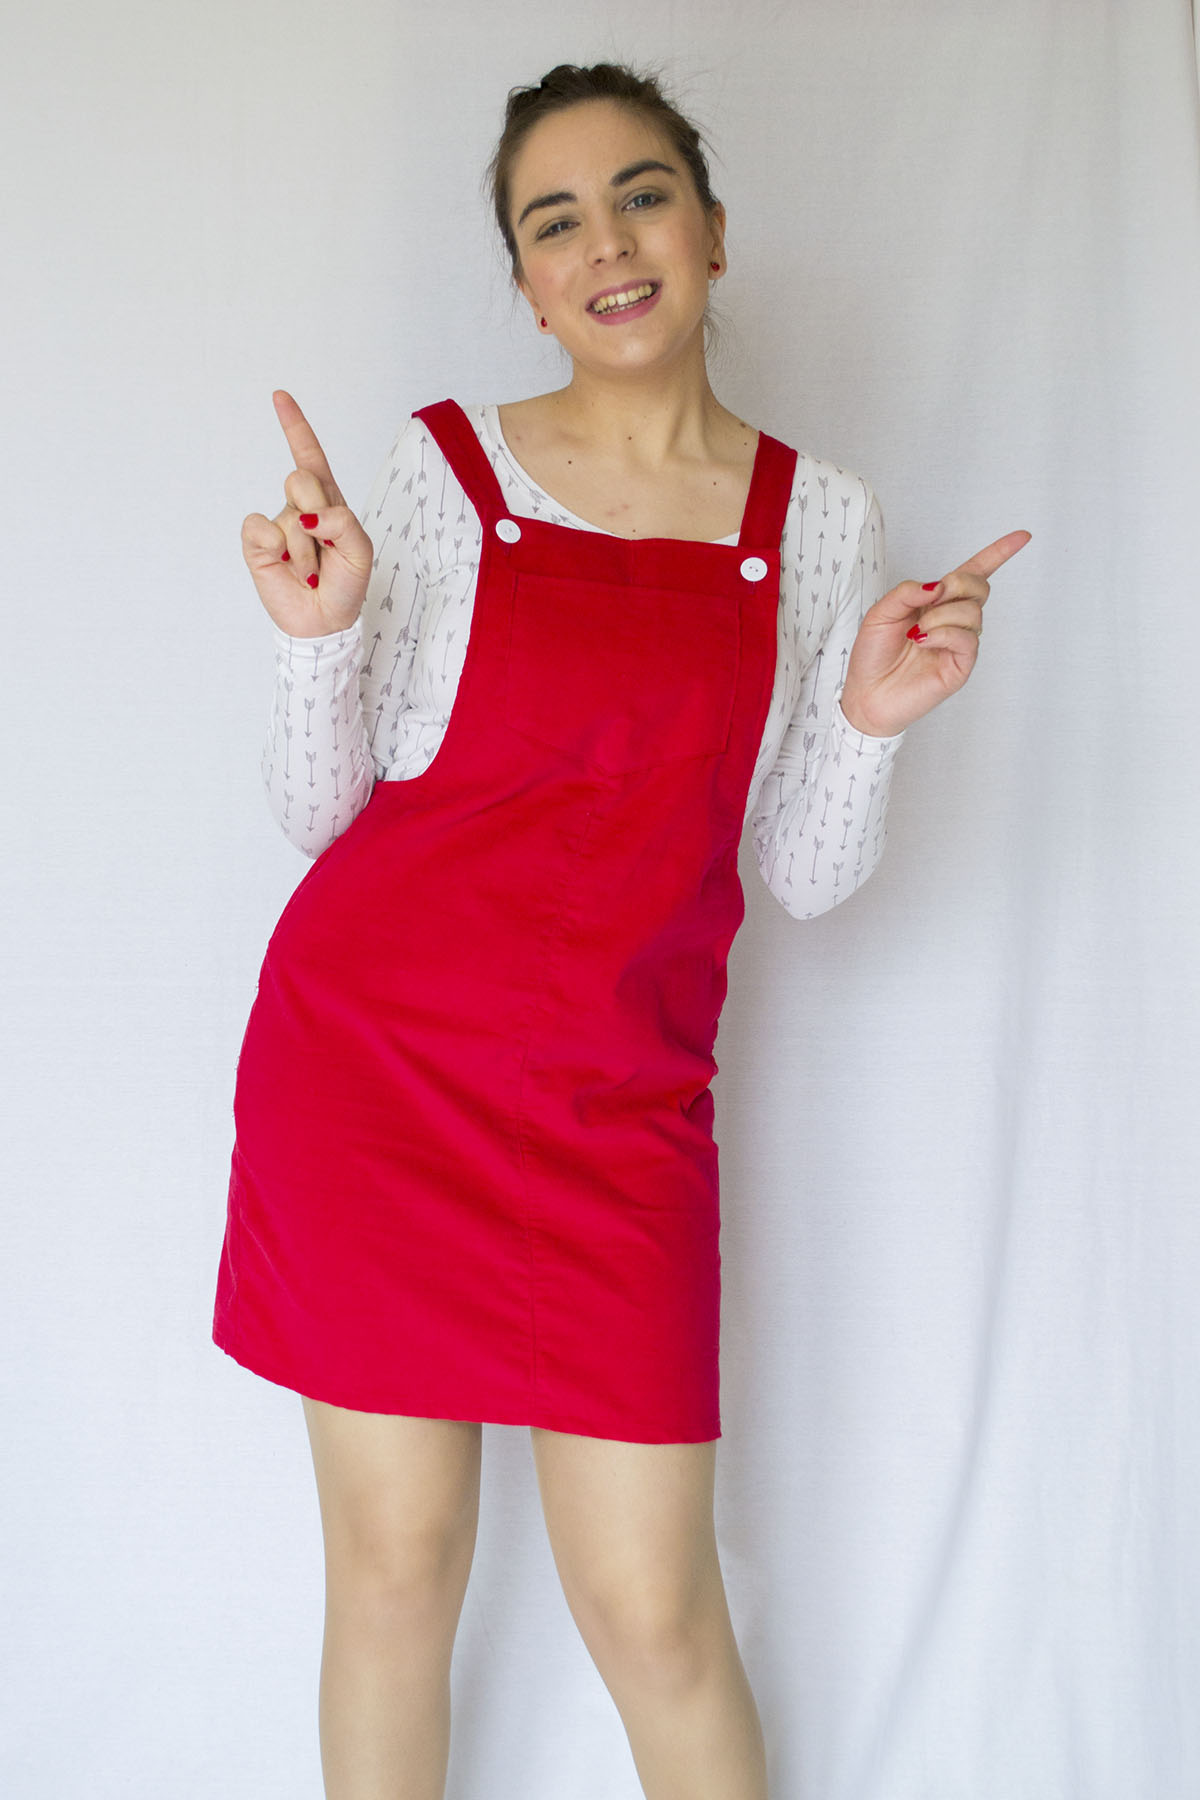 The Cleo pinafore dress from Tilly and the buttons